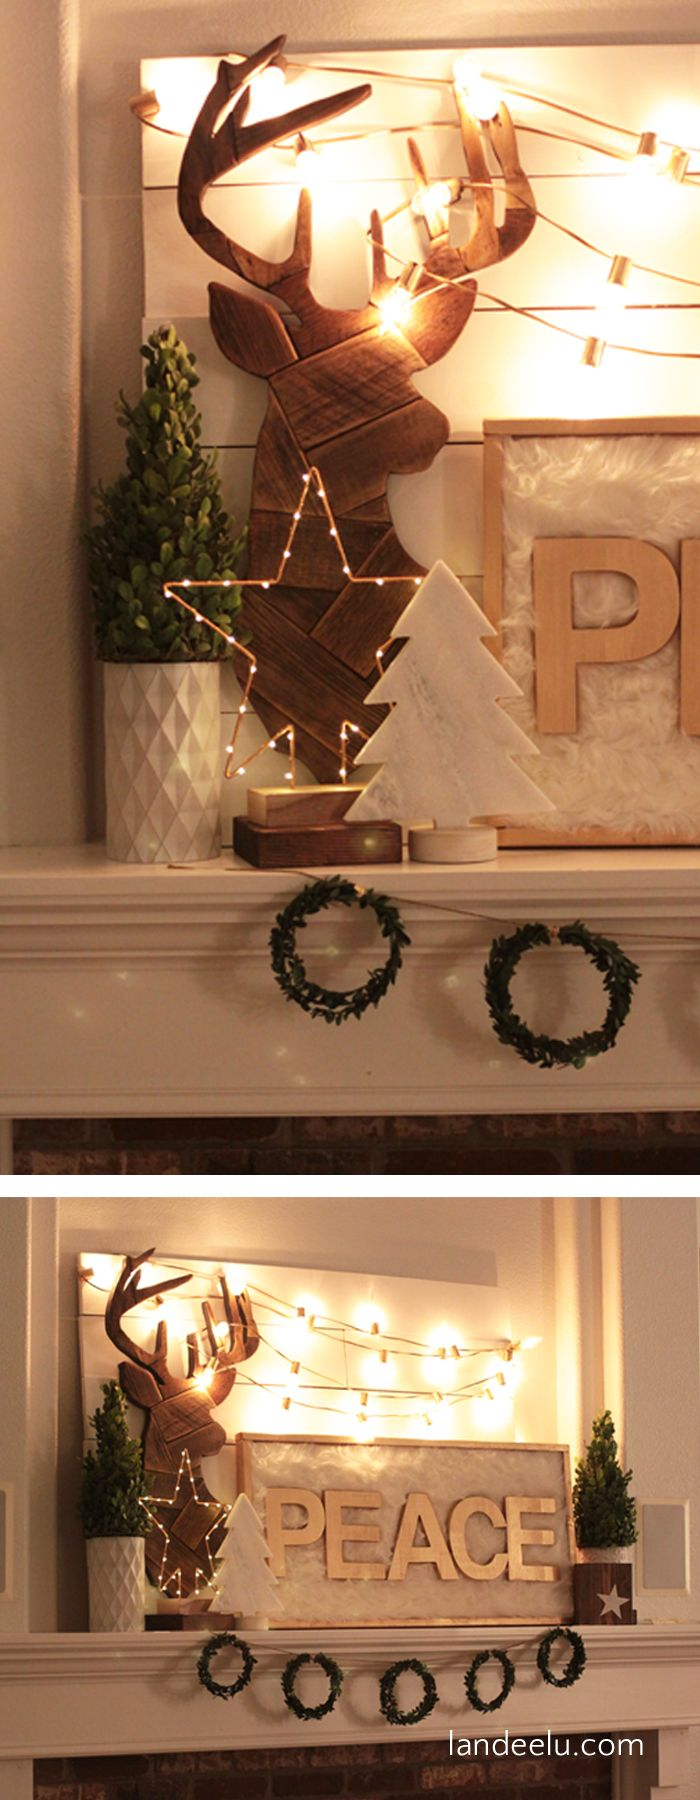 Christmas mantle decor - Christmas Mantel Decor Peace